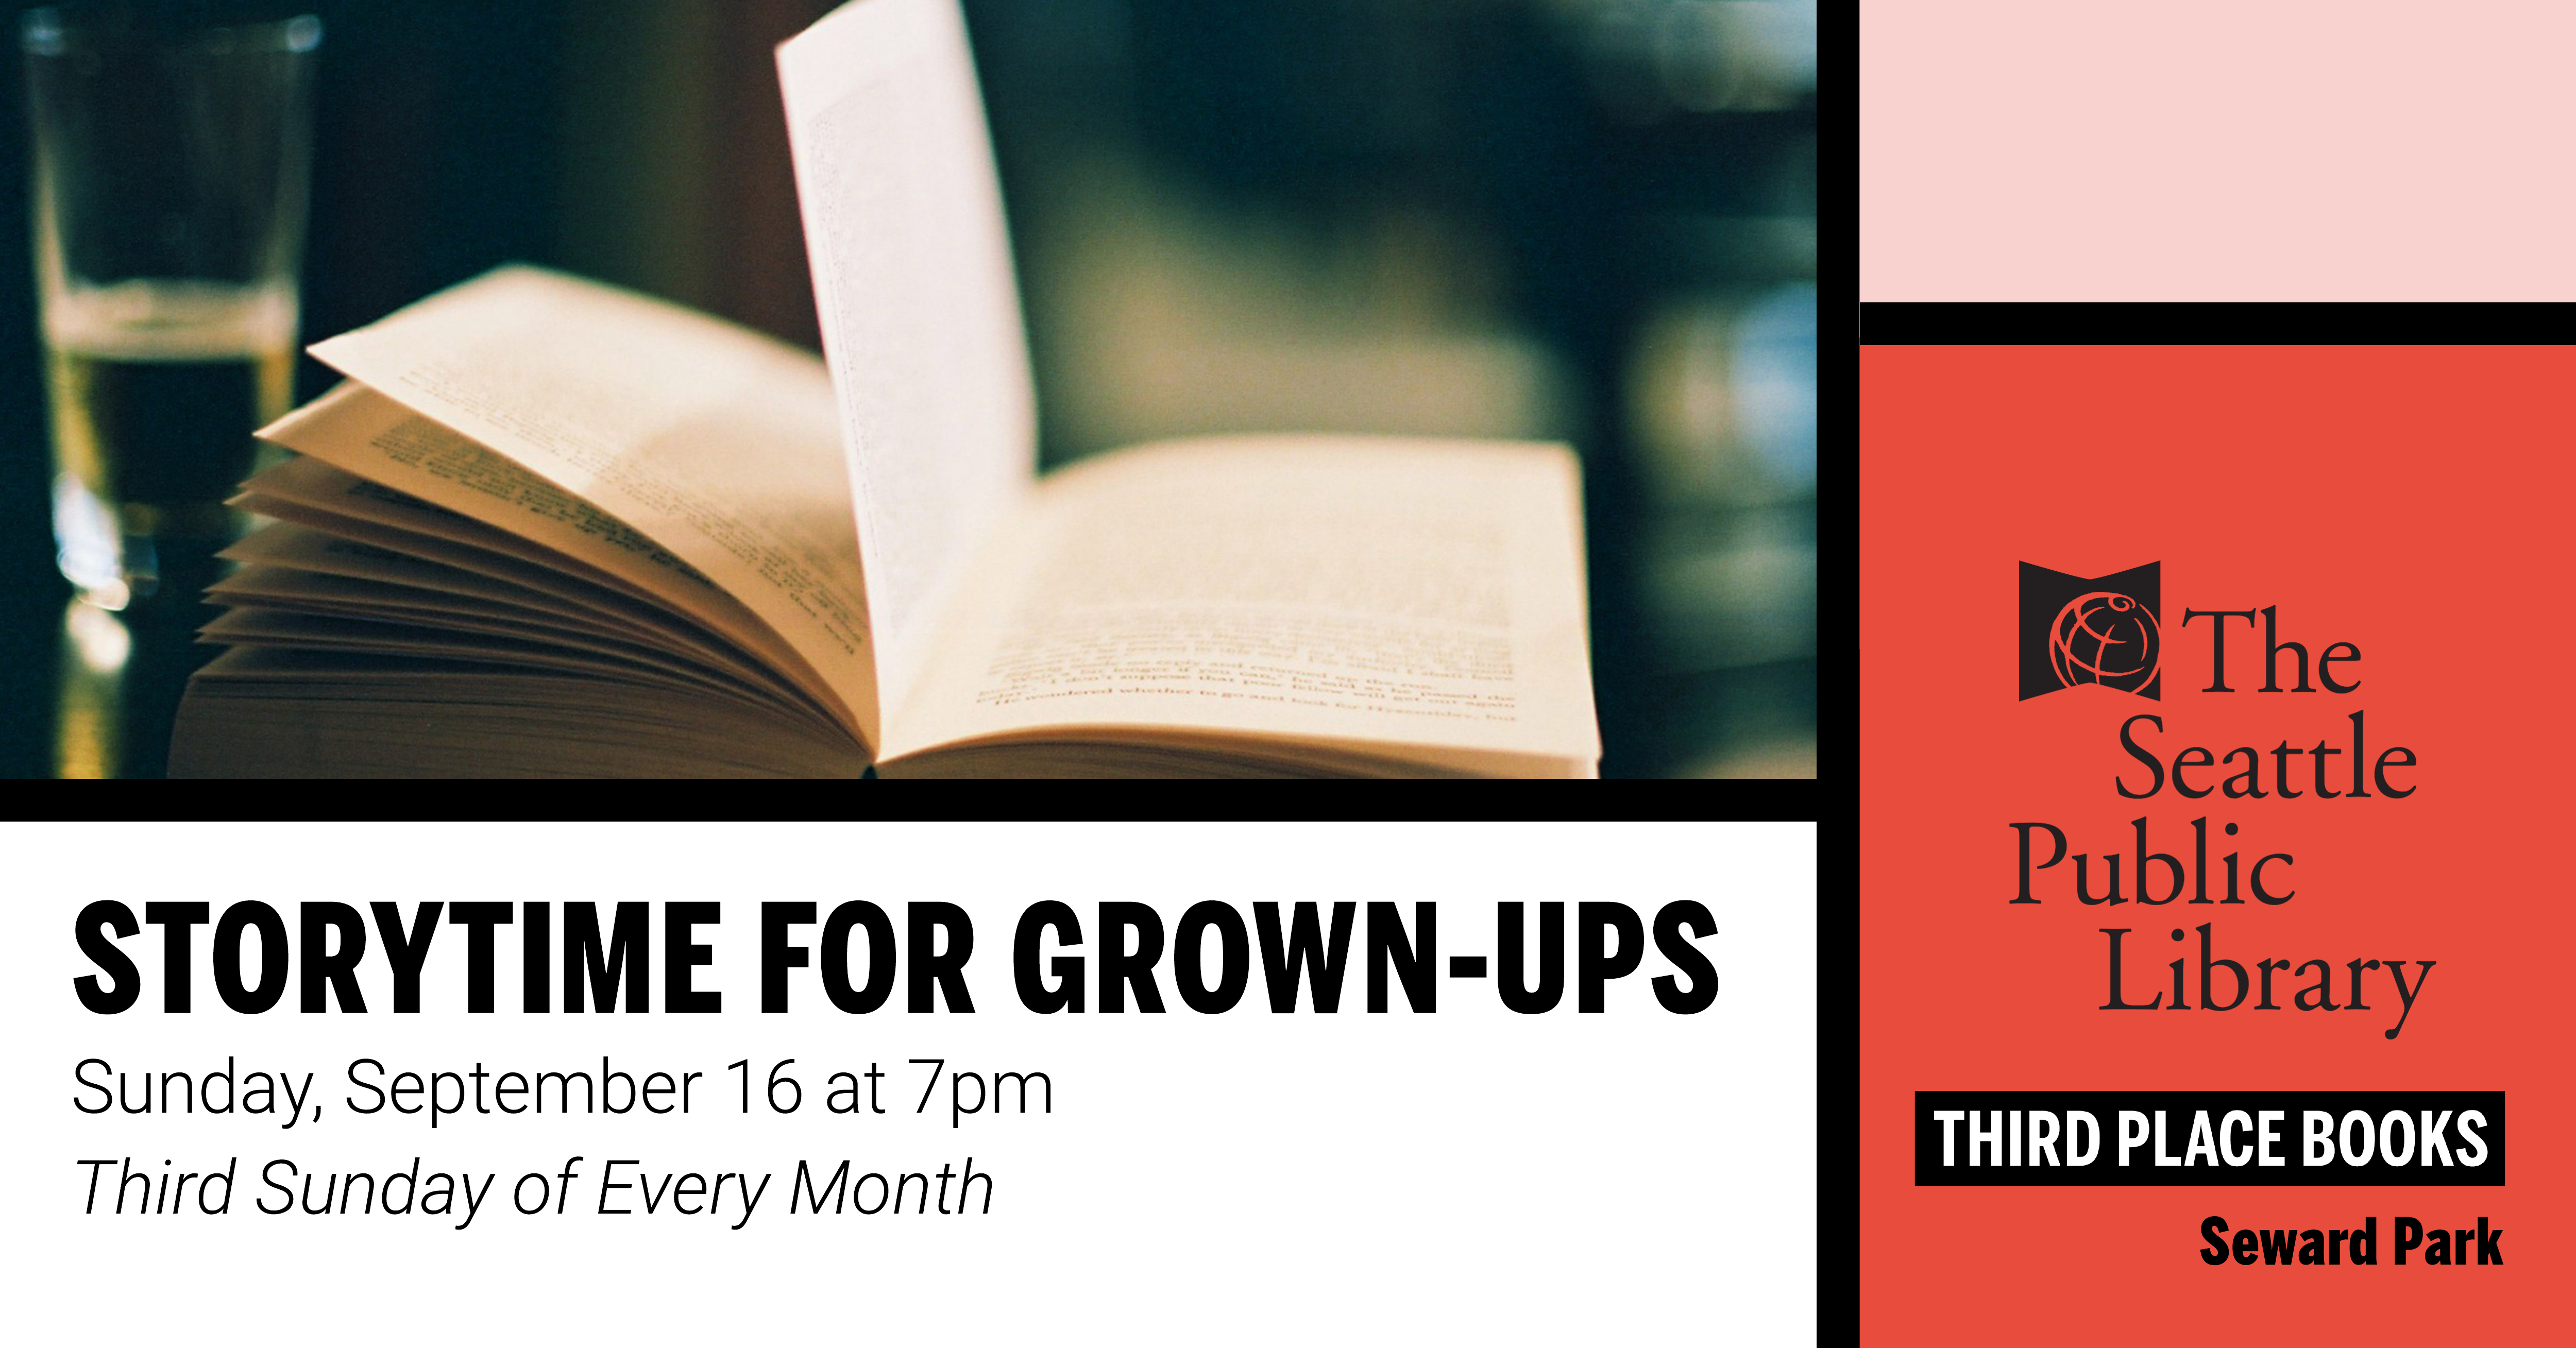 Story Time for Grown Ups! on Sunday, September 16 at 7pm